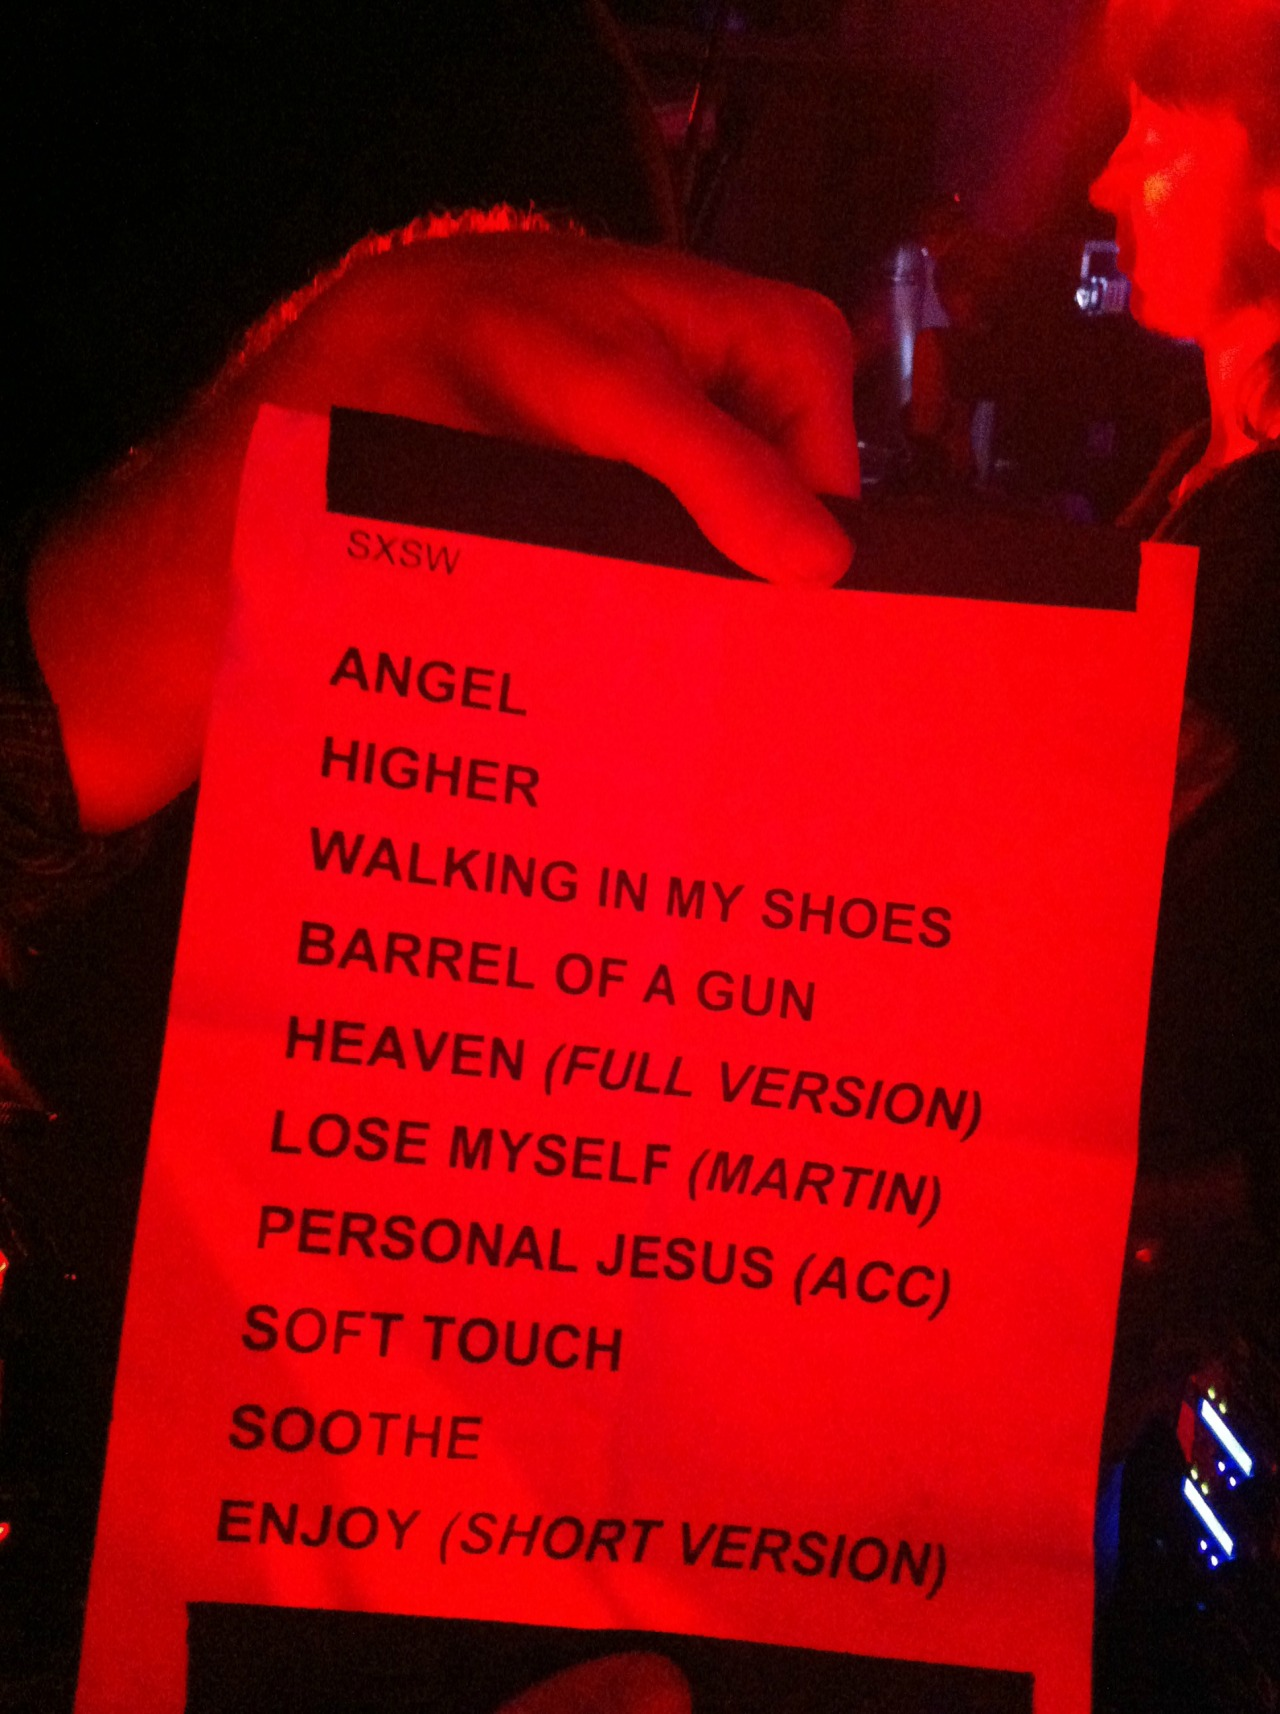 Setlist from Depeche Mode's showcase at South By Southwest tonight